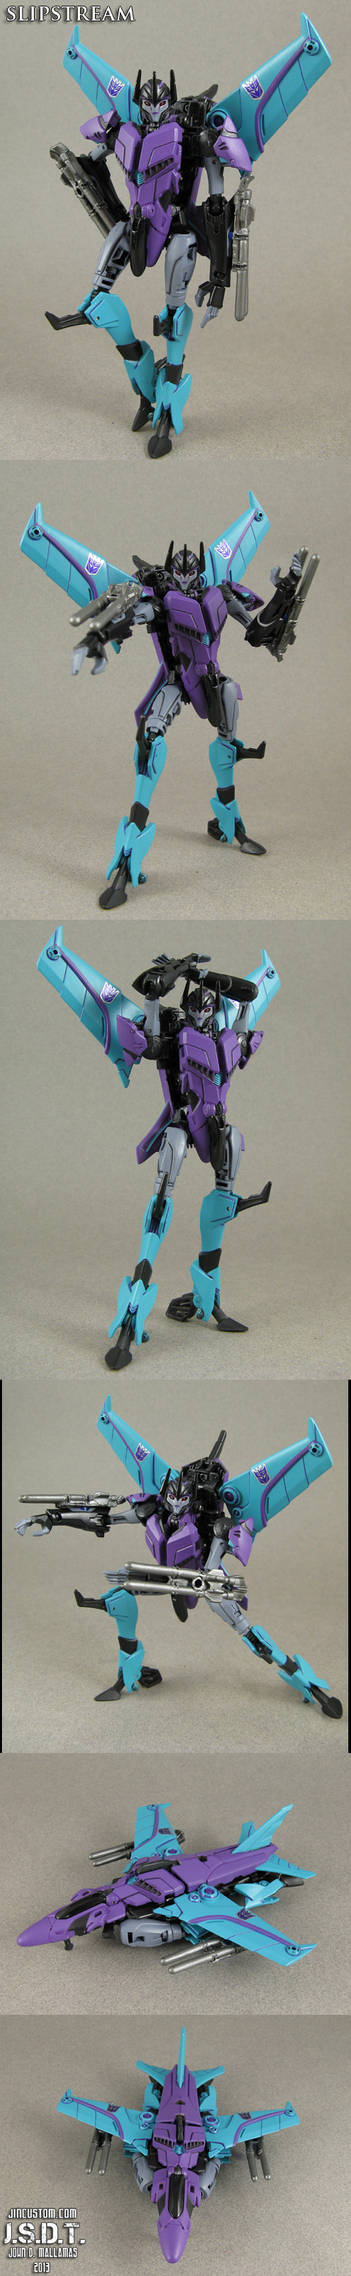 Custom Transformers Prime Slipstream Figure